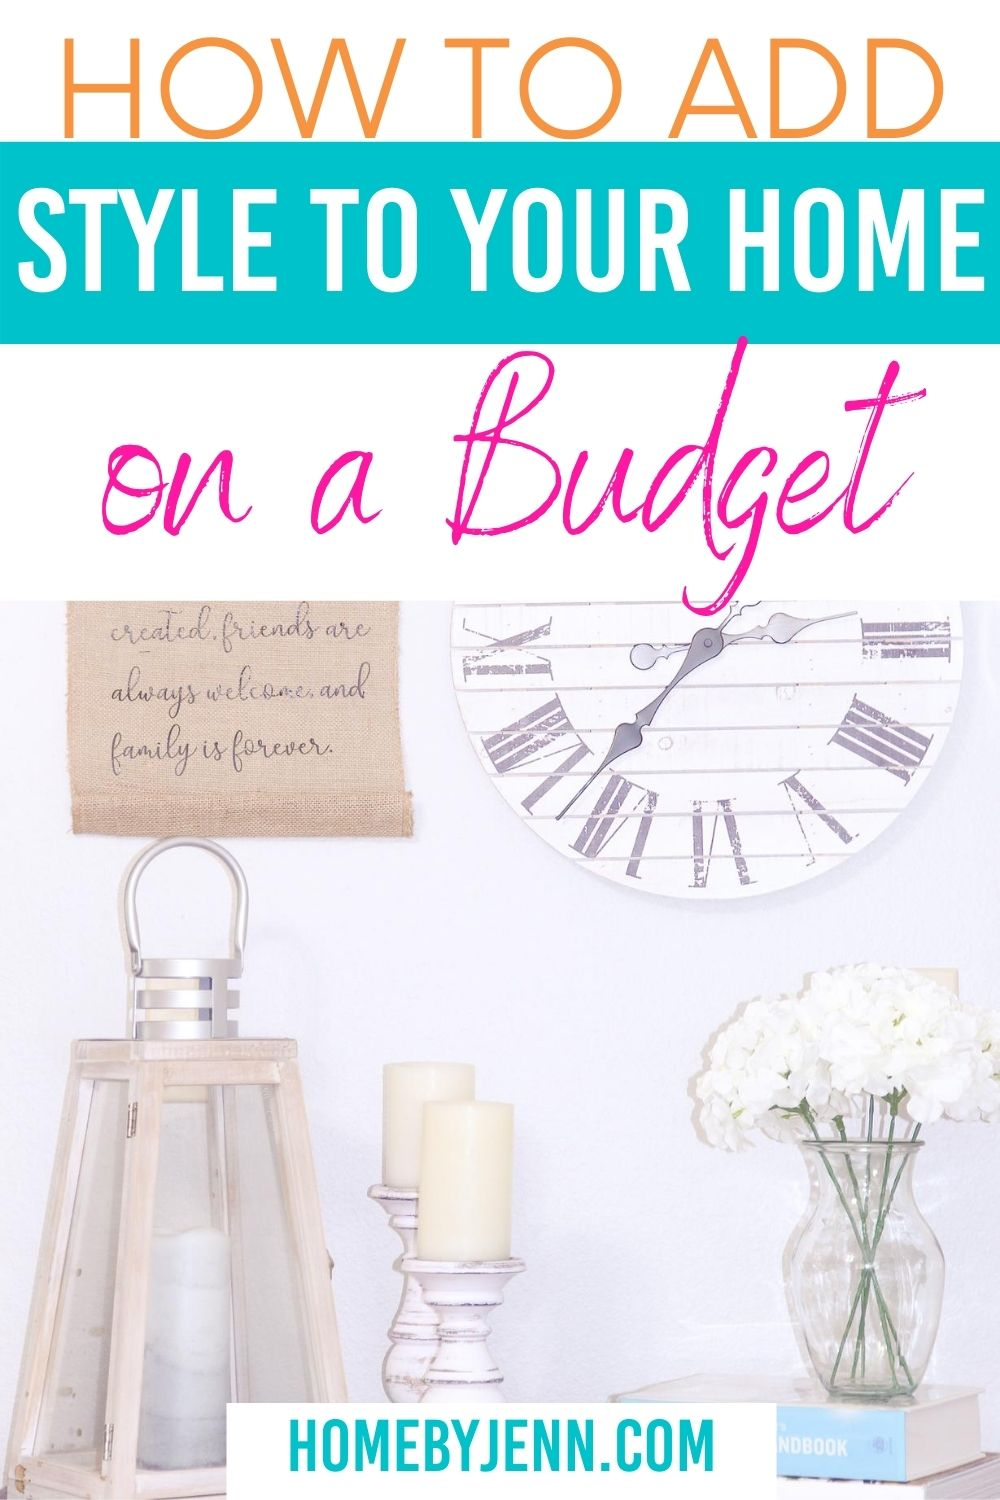 Decorating your home and trying to find your style is a struggle for many people. Learn how to add style to your home that fits your design style. Doing this slowly will allow you to get your home to the way you want it. via @homebyjenn